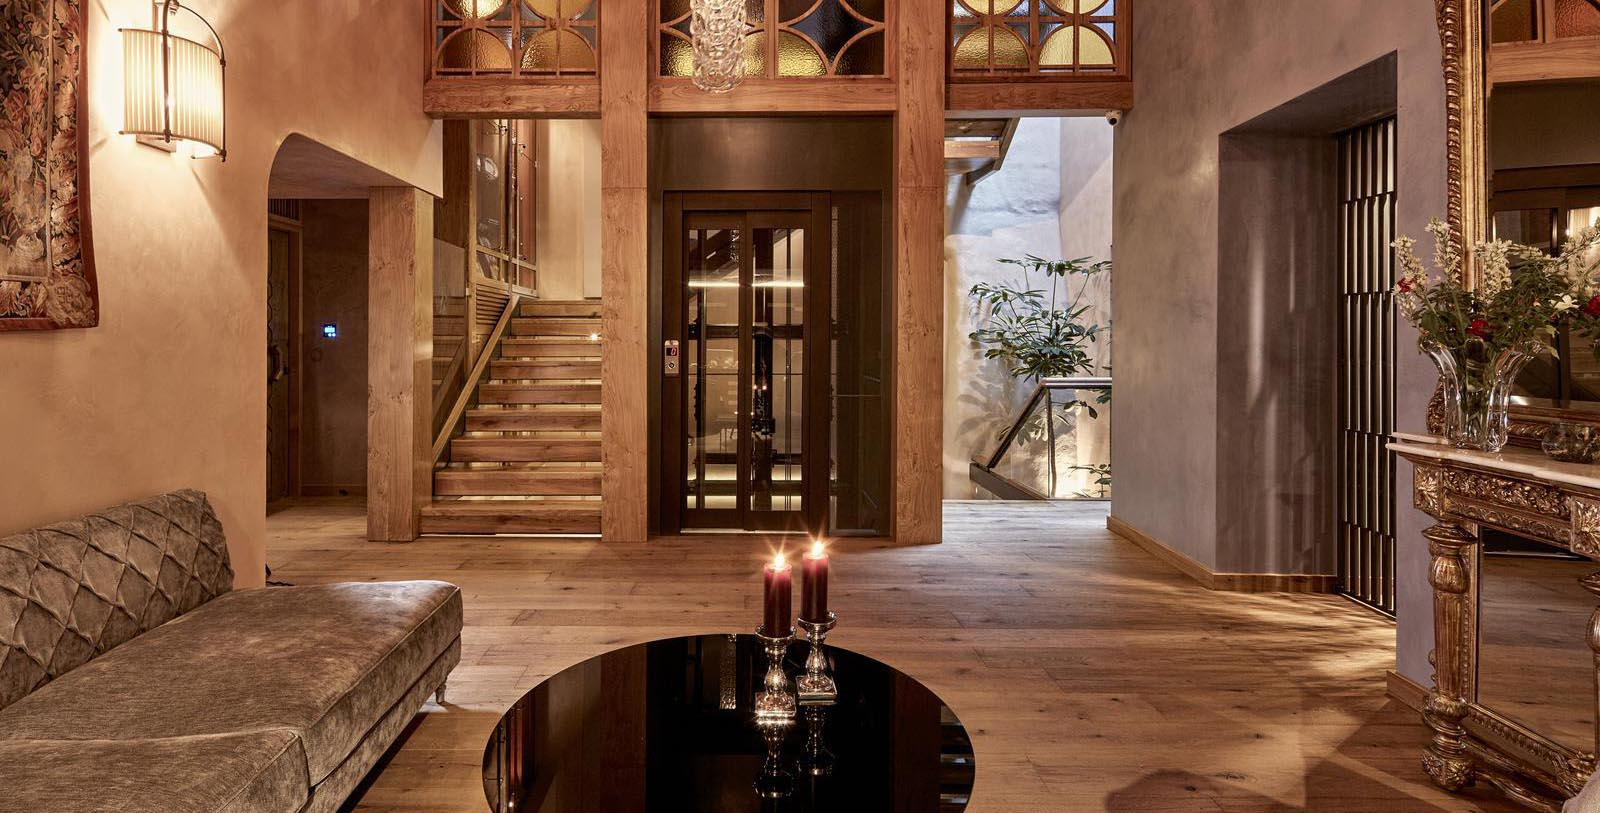 Image of hotel lobby interior Domus Renier Boutique Hotel, 1608, Member of Historic Hotels Worldwide, in Chania, Greece, Explore